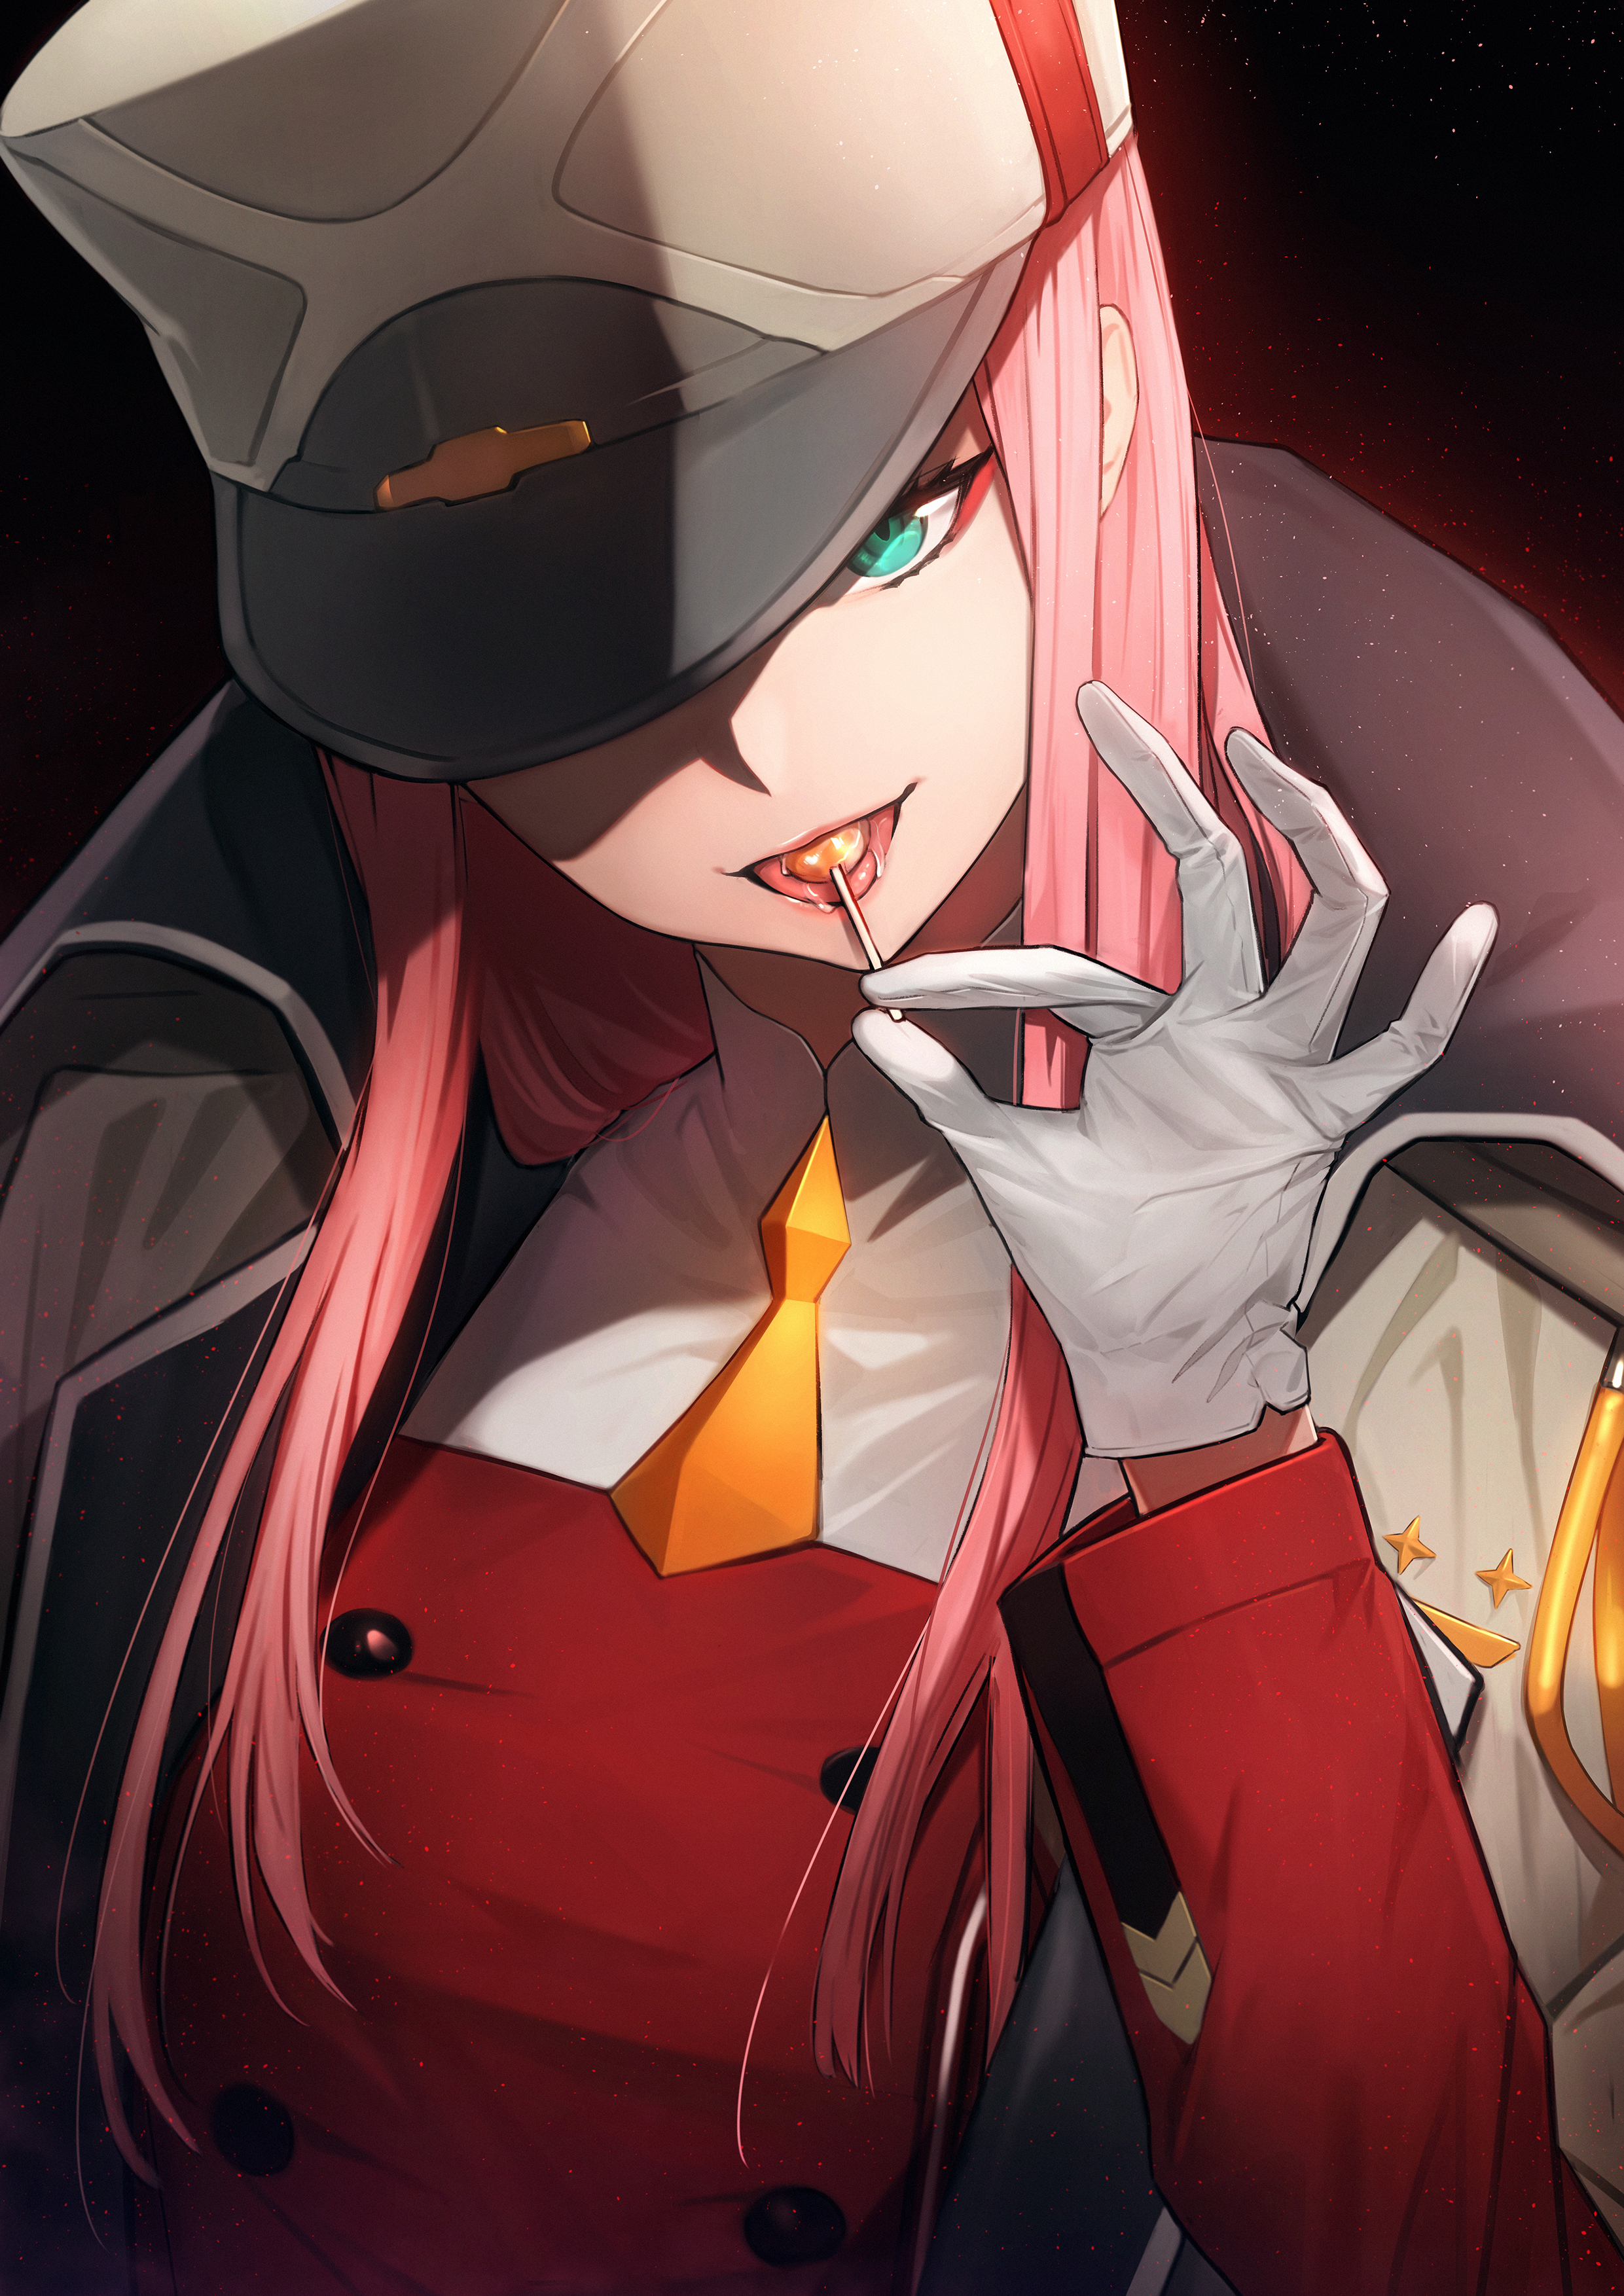 Zero Two Darling In The Franxx Zerochan Anime Image Board